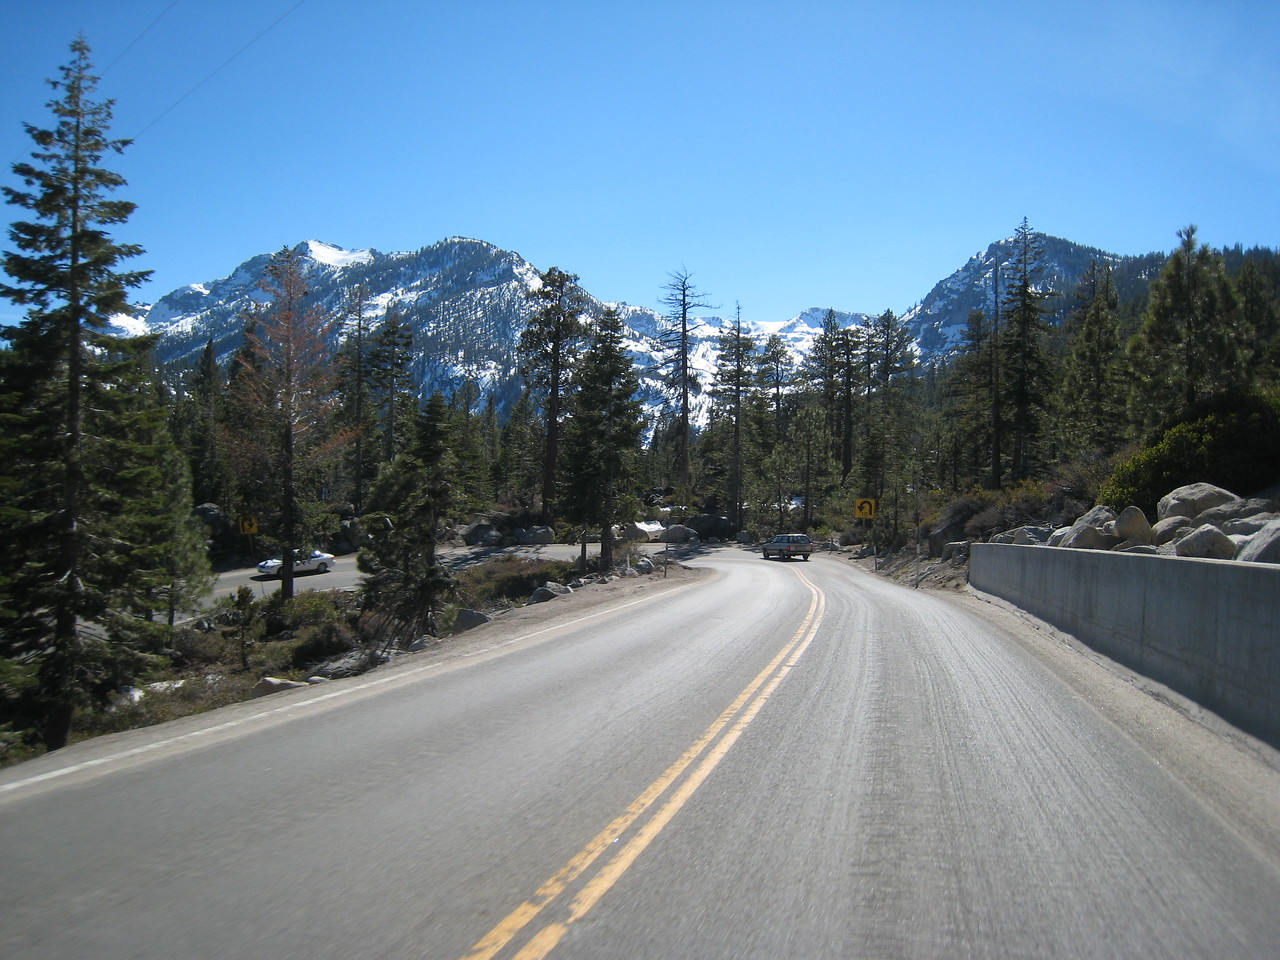 The road down from Emerald Bay to South Lake Tahoe has its share of switchbacks.  As expected, the cars take the turns at a very cautious speed.  I patiently take my time, knowing that I'll get another adrenaline fix as I return home over Spooner Pass.